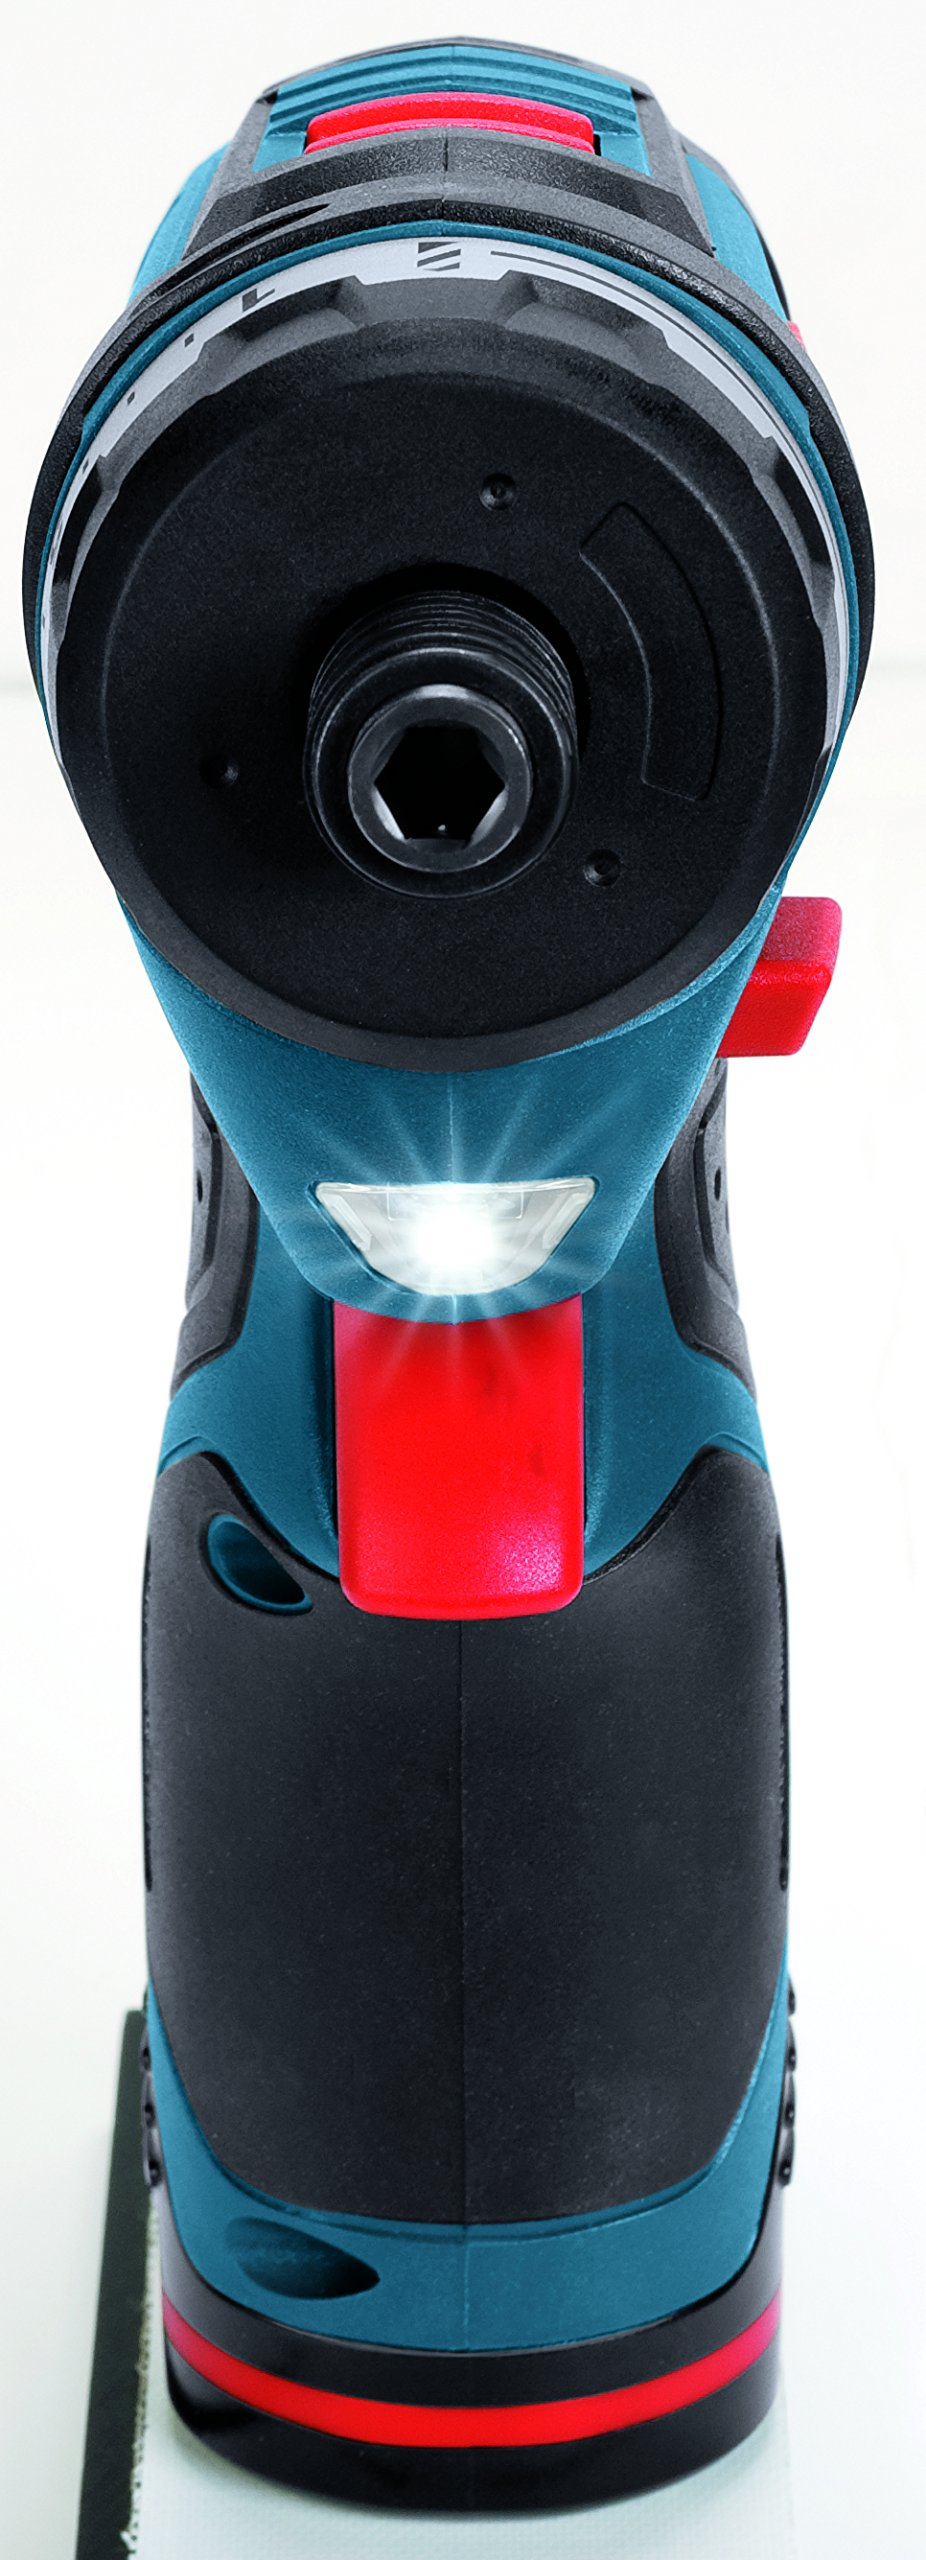 Bosch PS21-2A 12-Volt Max Lithium-Ion 2-Speed Pocket Driver Kit with 2 Batteries, Charger and Case by Bosch (Image #4)